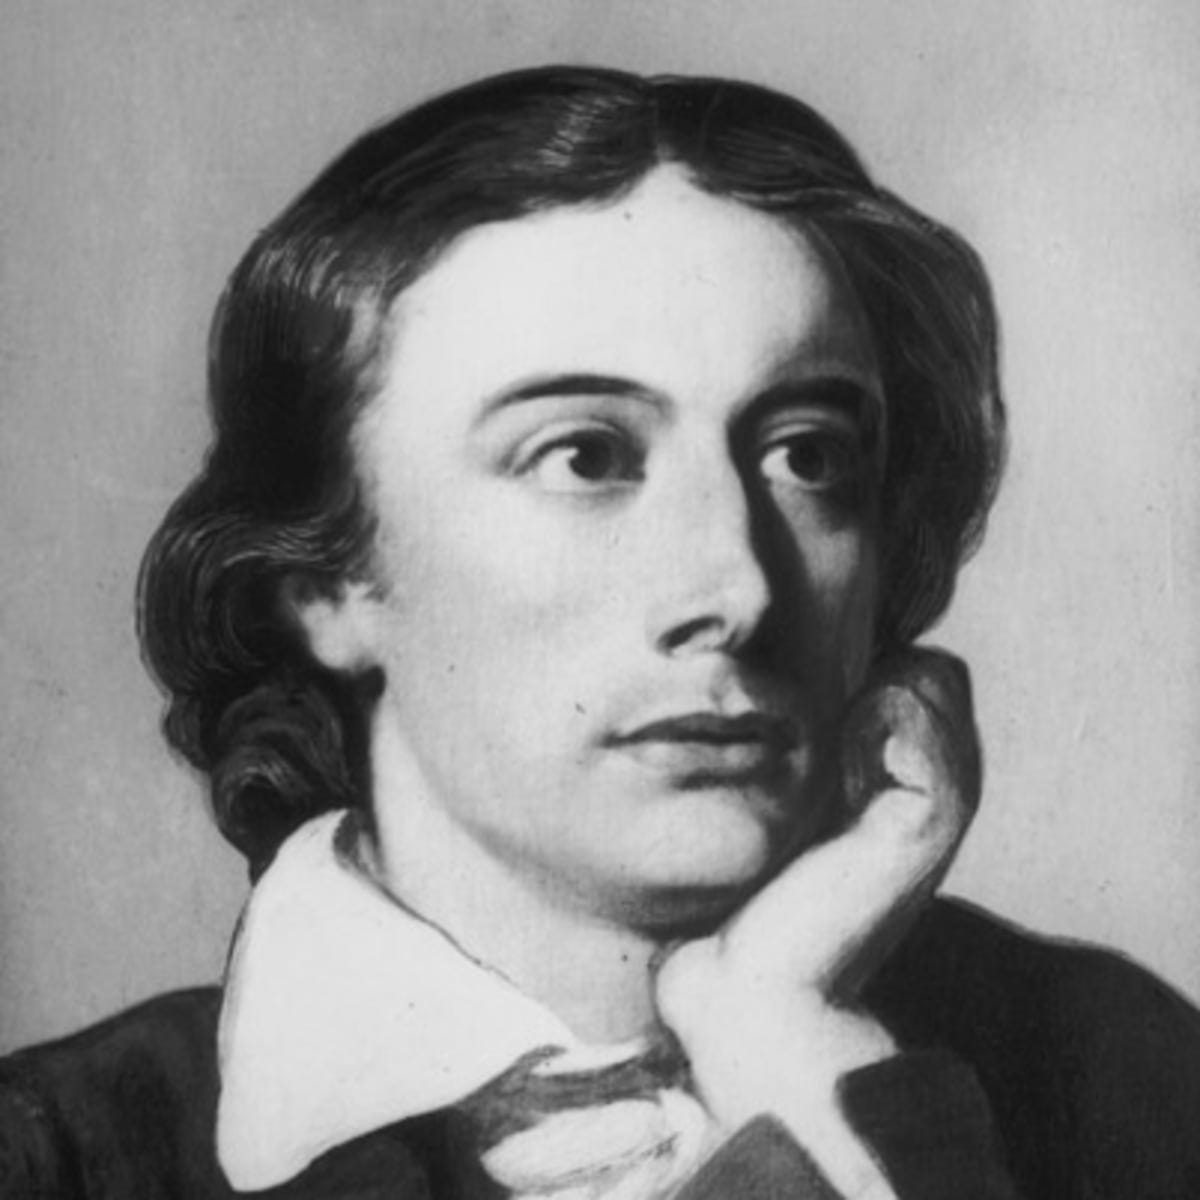 John Keats - Poems, Ode to a Nightingale & Facts - Biography